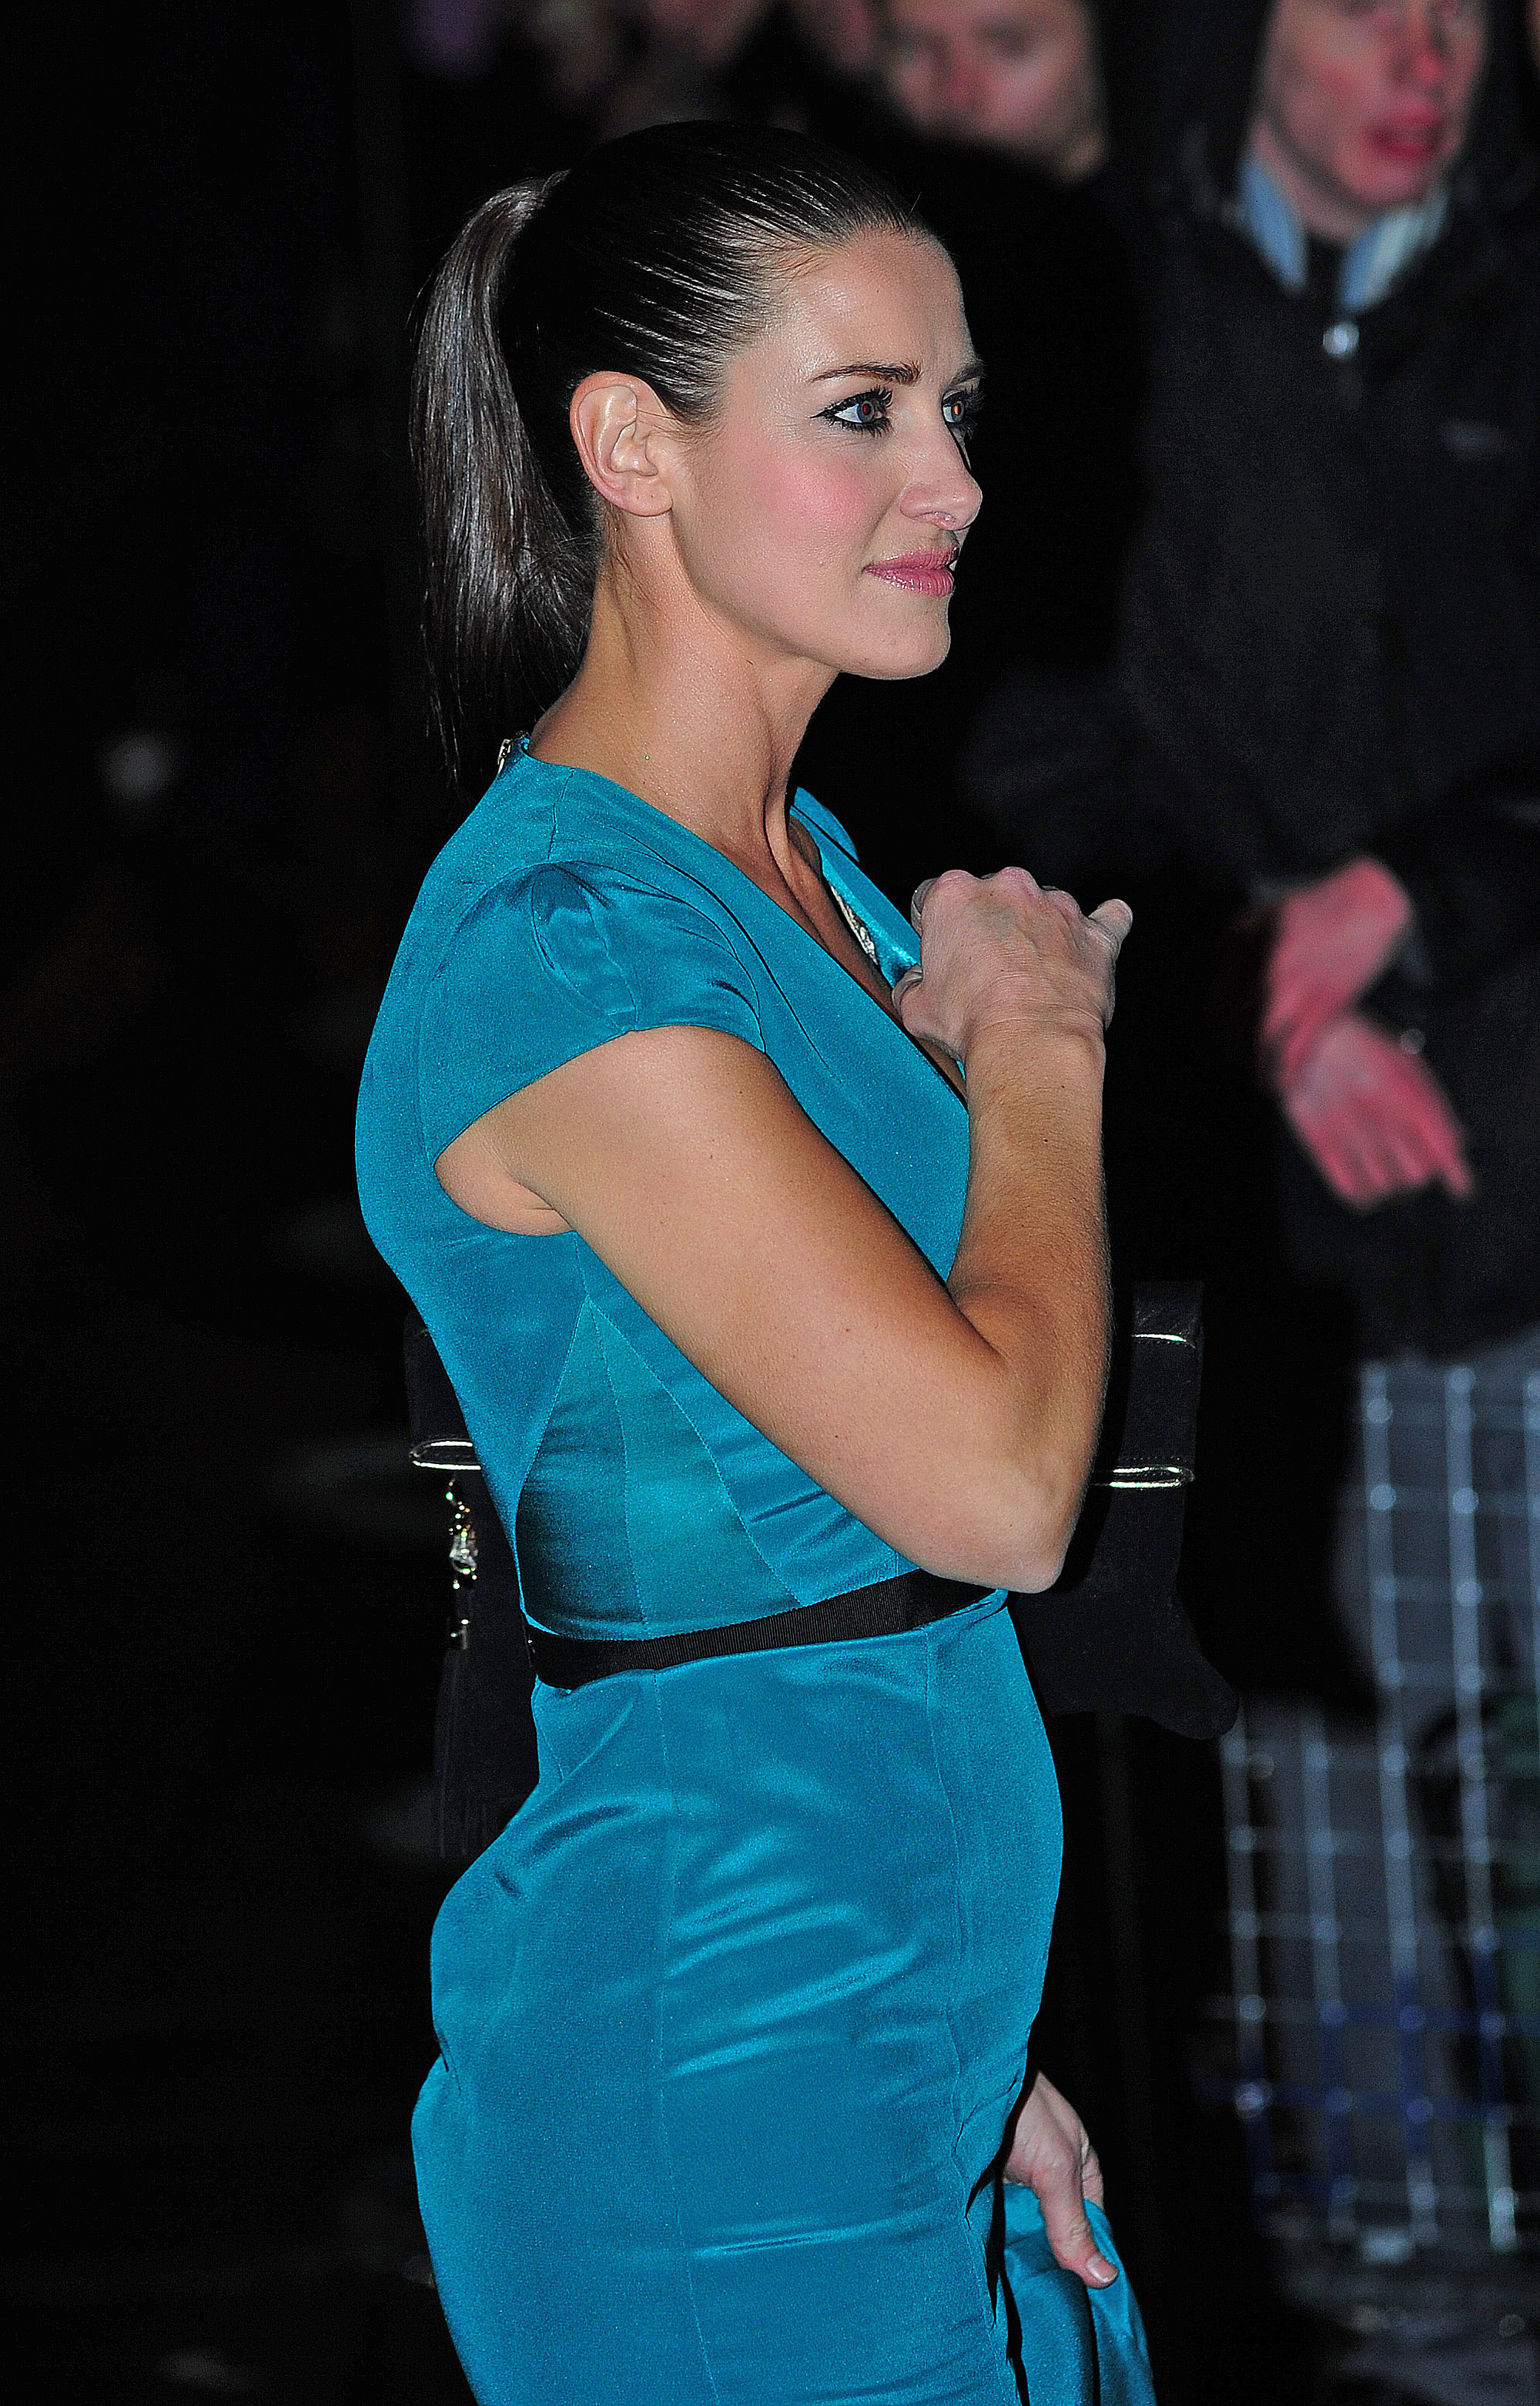 Kirsty Gallacher 2012 : Kirsty Gallacher cleavage-13